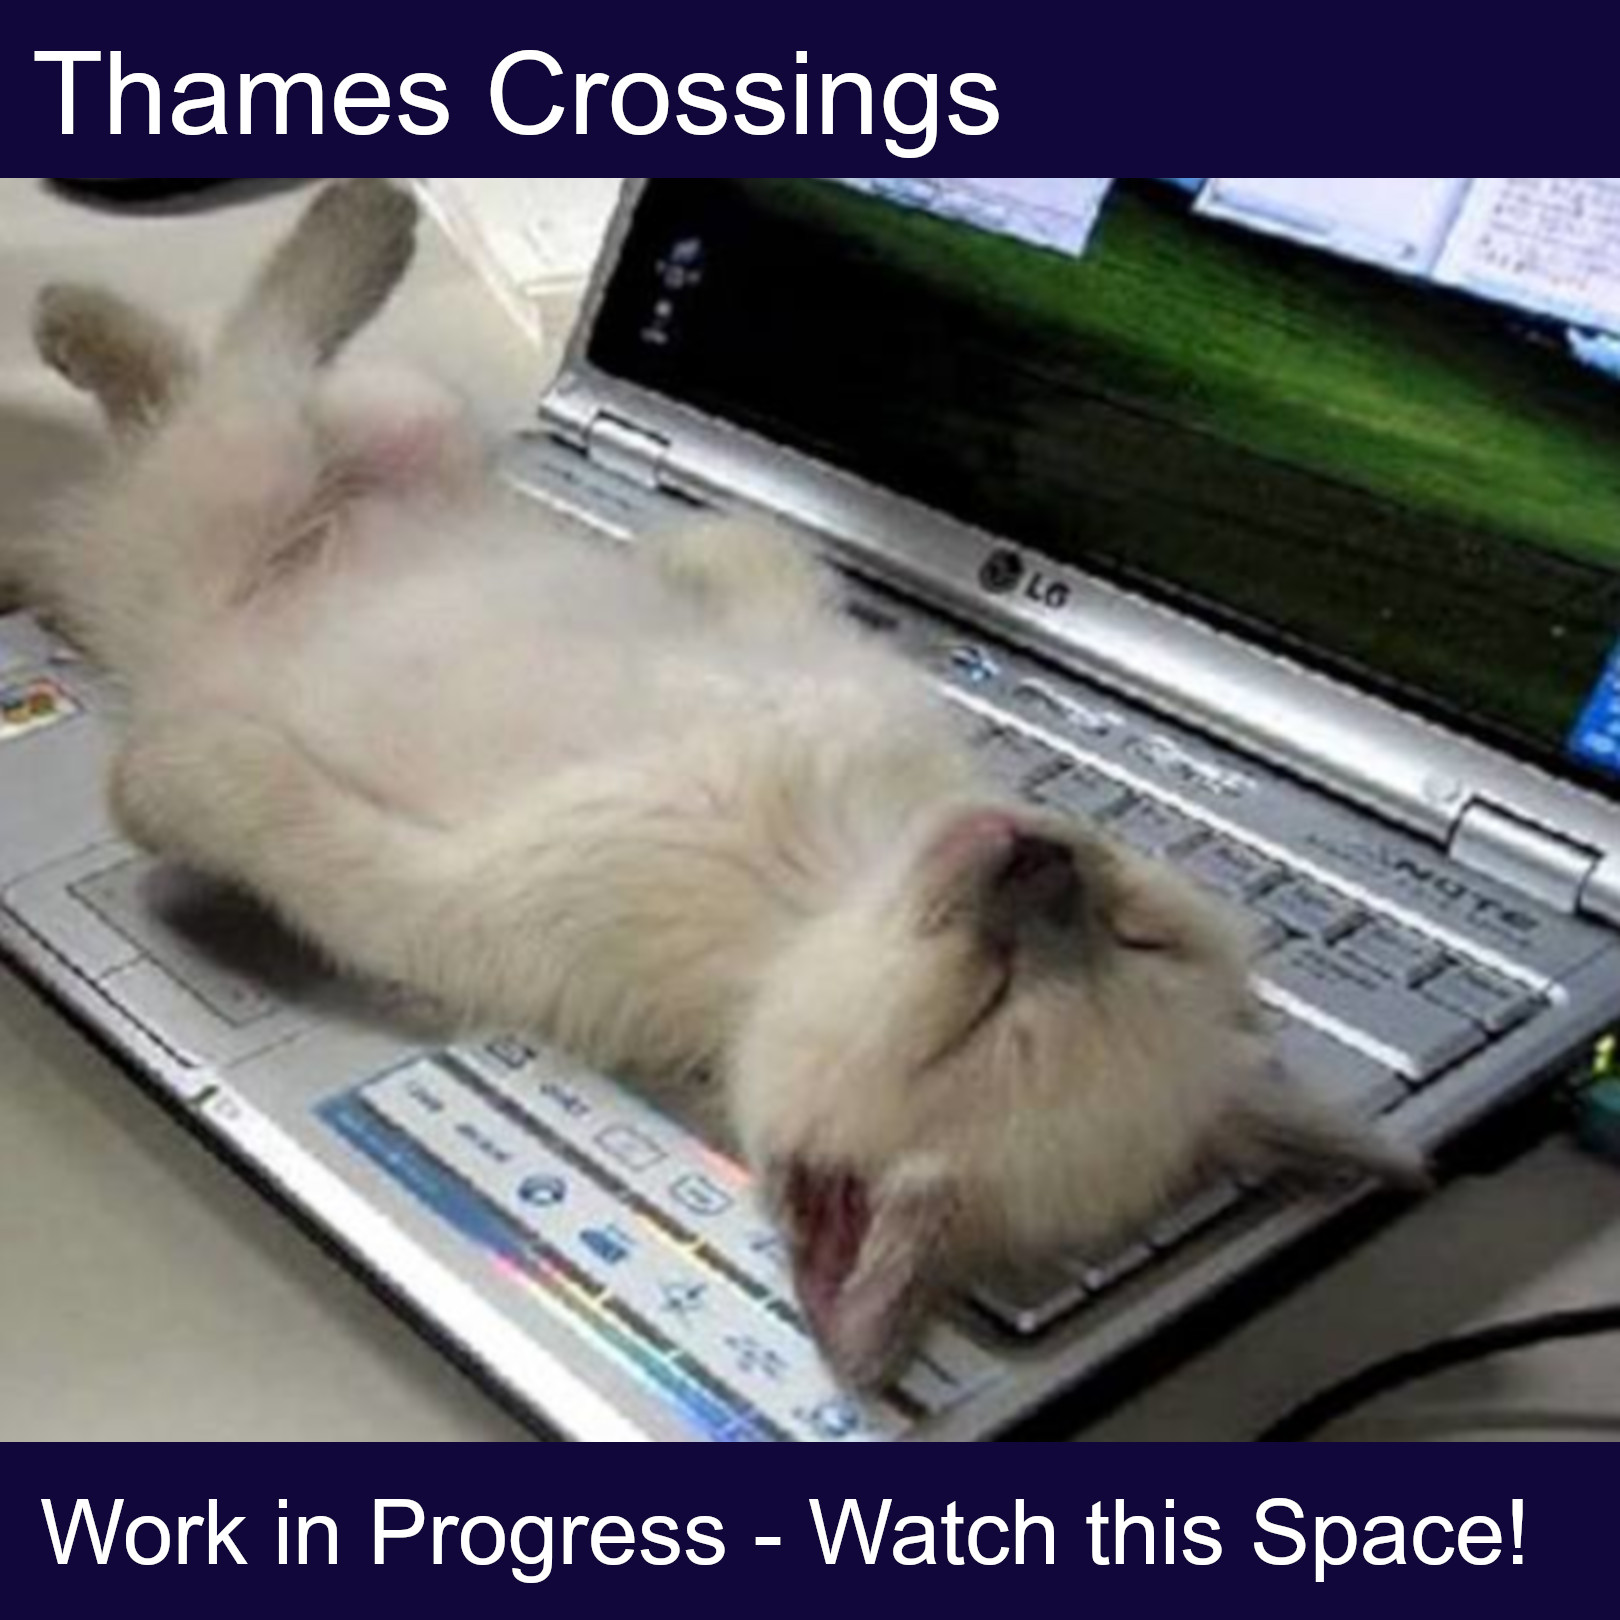 Thames Crossings